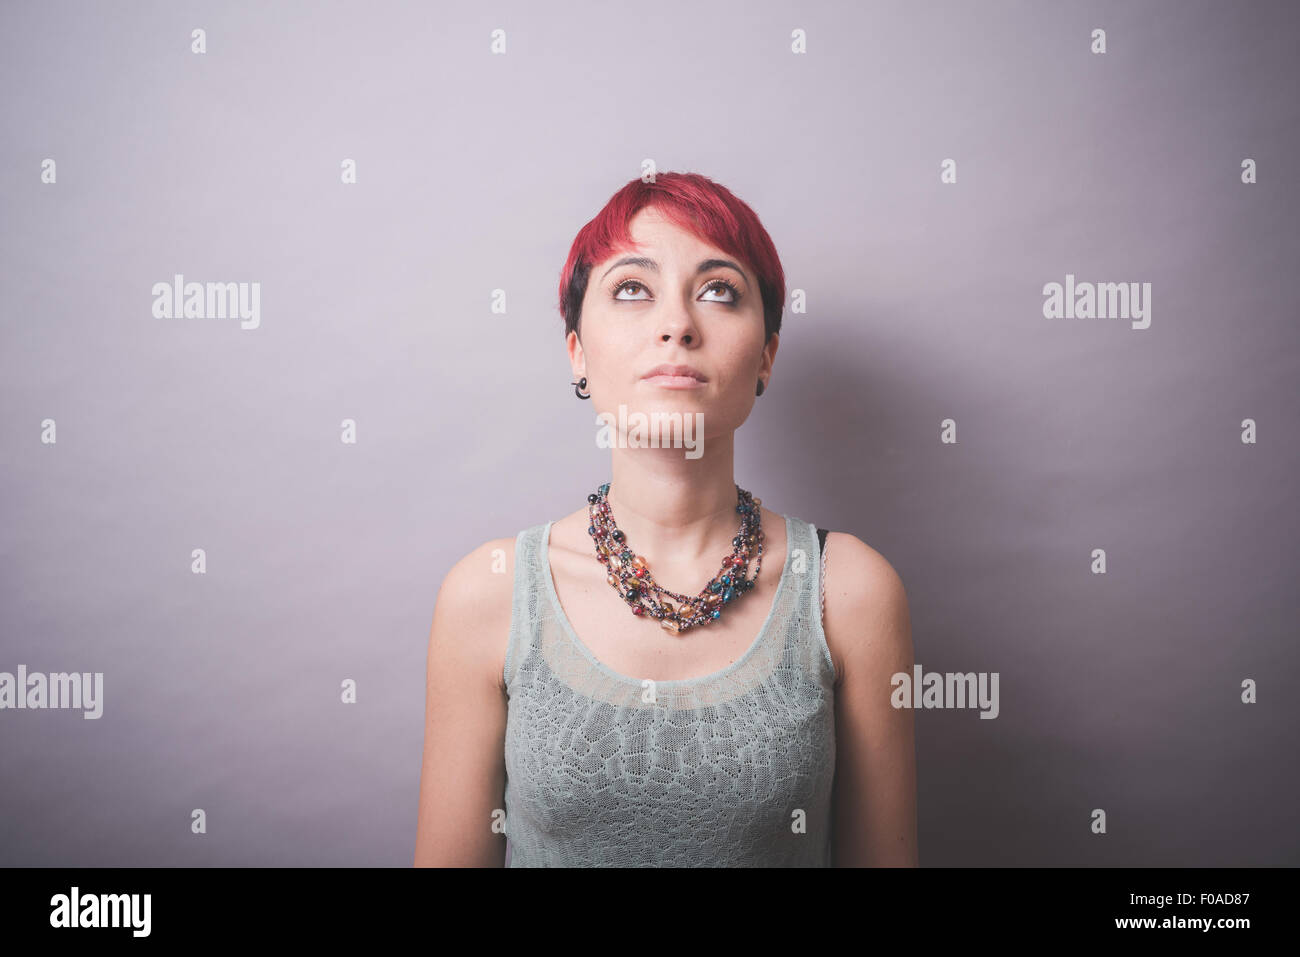 Studio portrait of young woman with short pink hair looking up - Stock Image